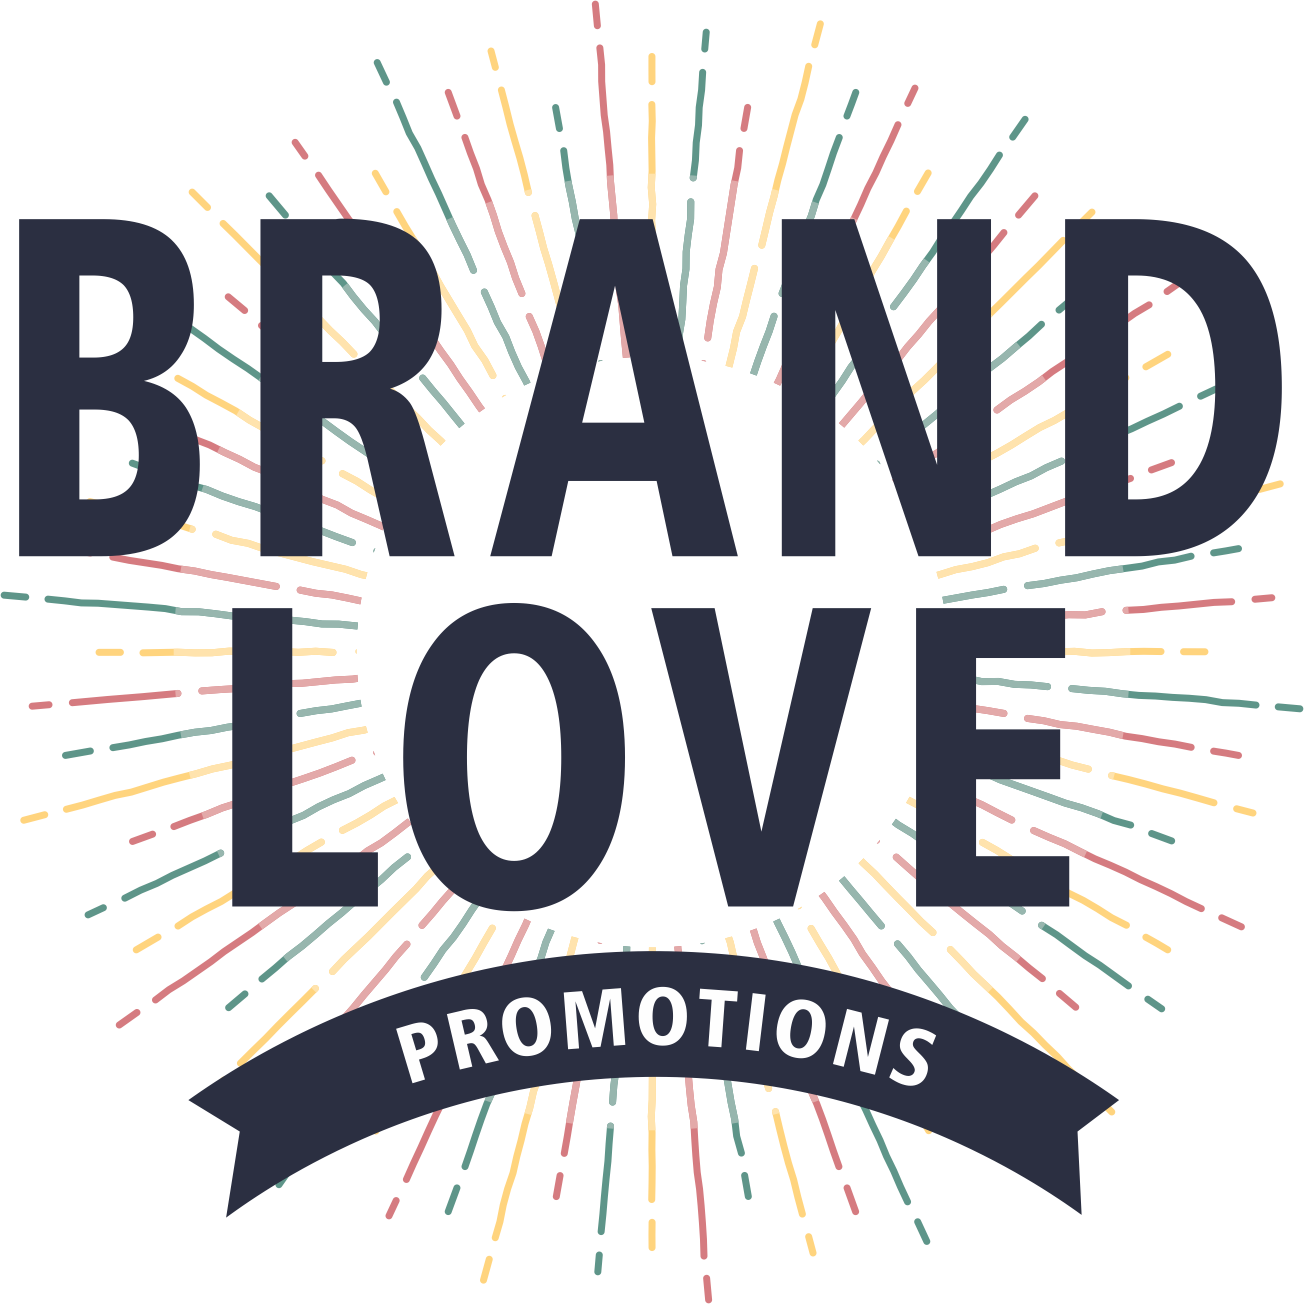 Brand Love Promotions